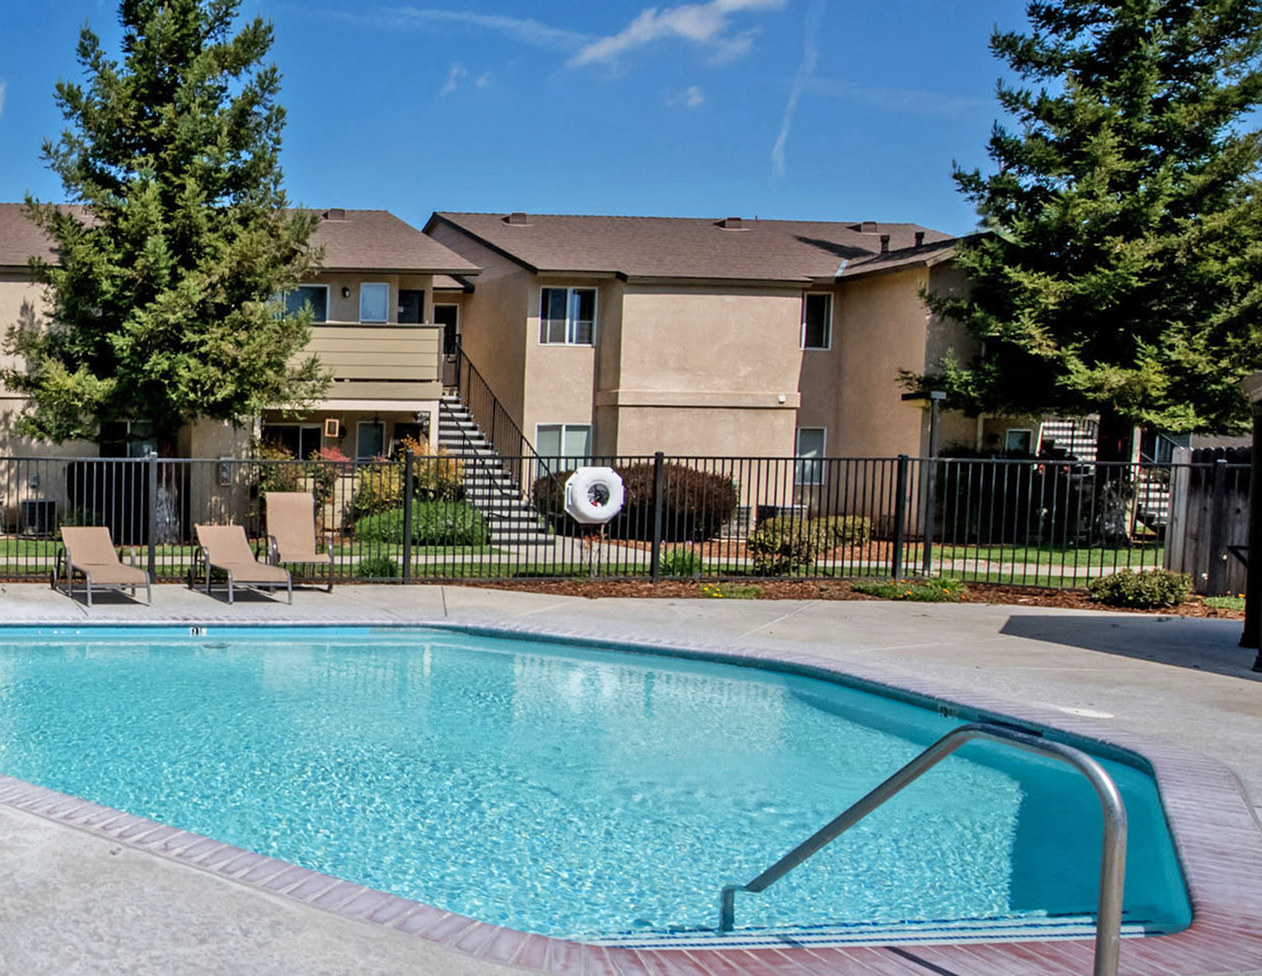 apartments for rent | apartments for rent near me | apartments for rent in fresno | apartments |